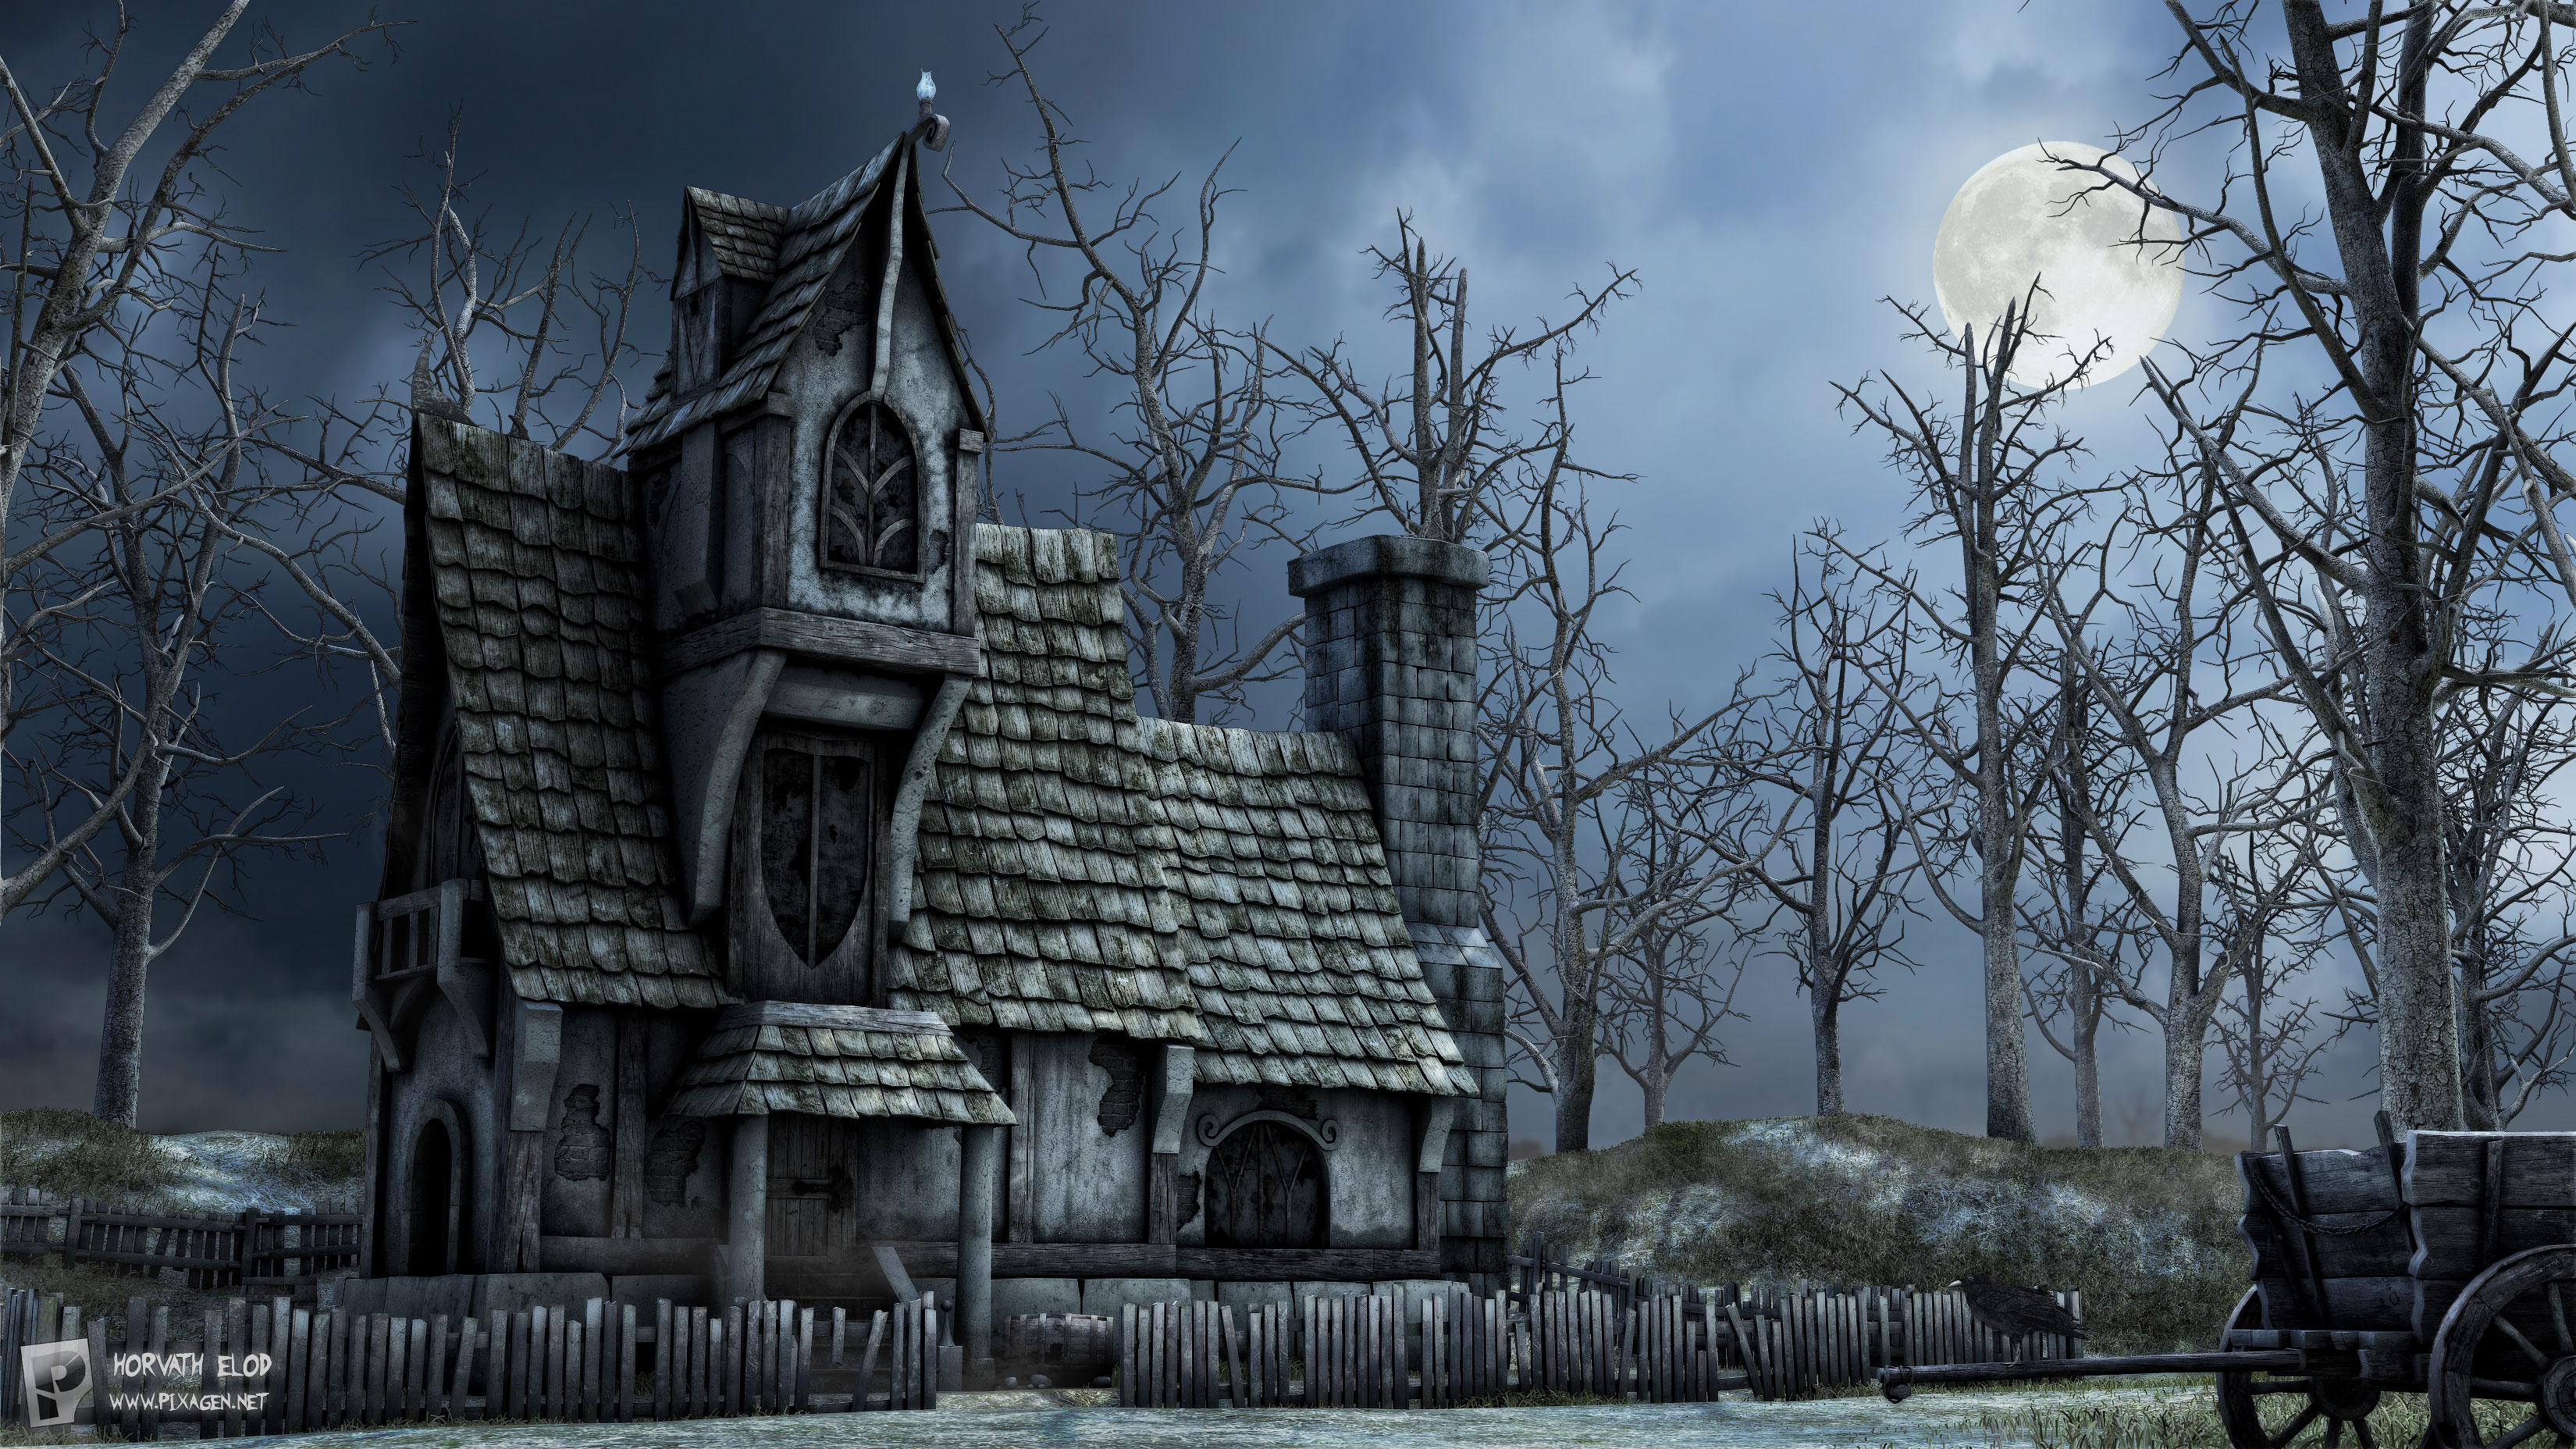 Quotes About Haunted Houses: Halloween Haunted House Quotes. QuotesGram